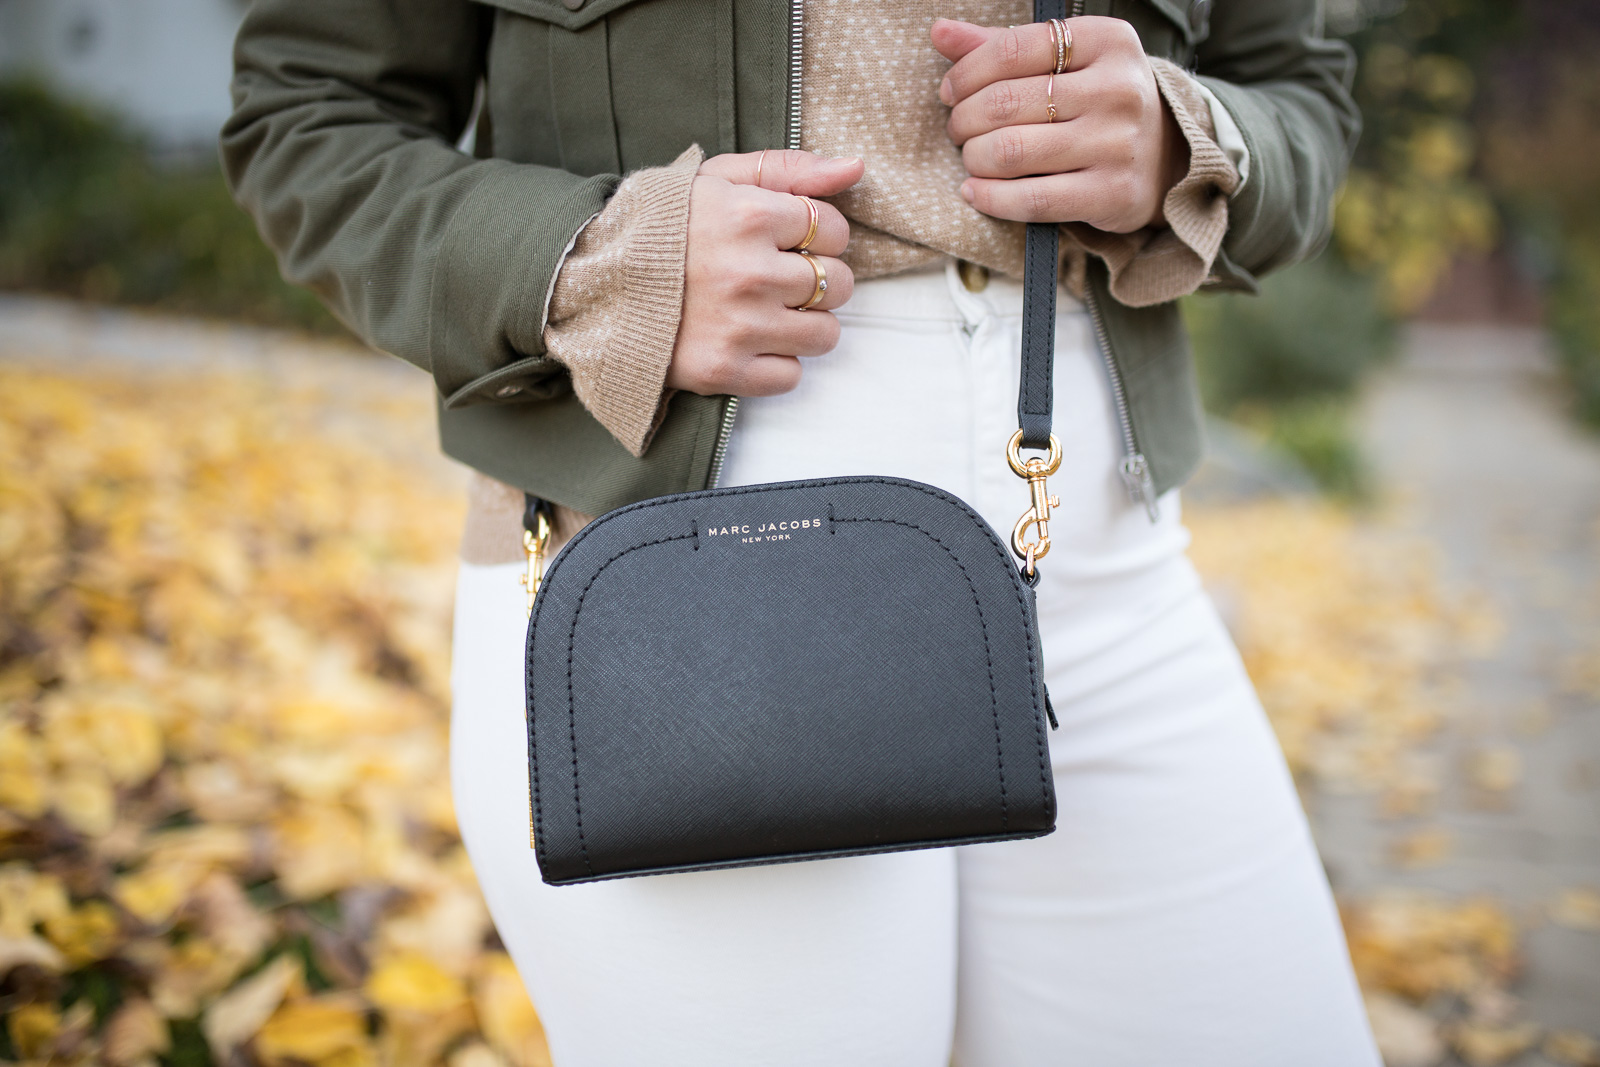 layered gold dainty rings and a marc jacobs crossbody